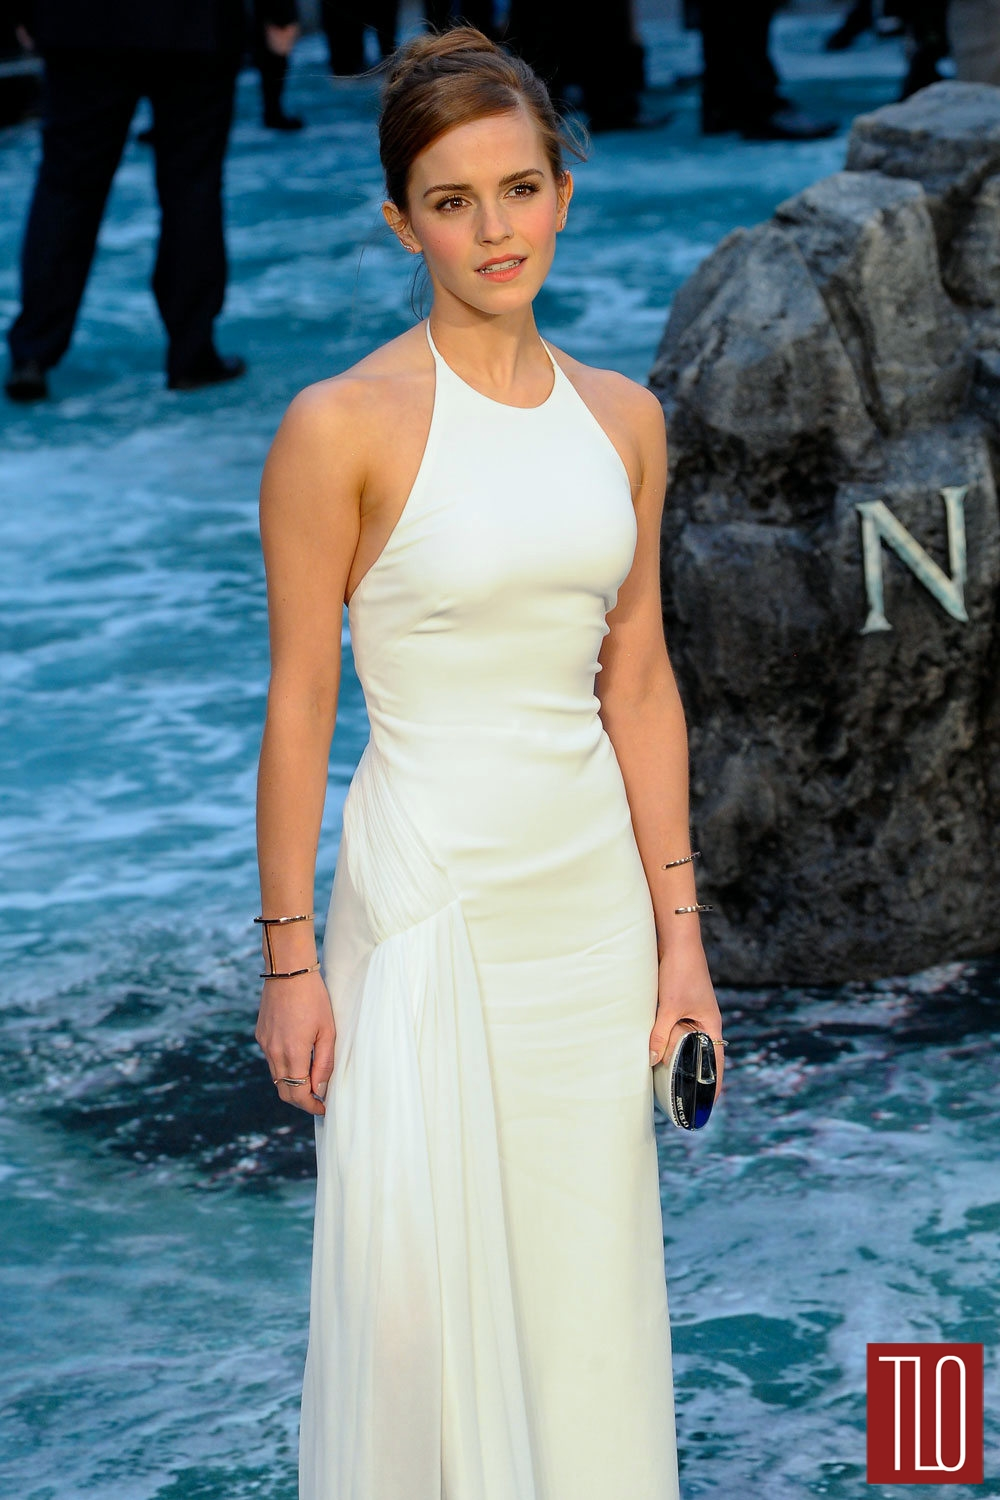 Emma-Watson-Noah-London-Premiere-Ralph-Lauren-Collection-Tom-Lorenzo-Site-TLO (1)